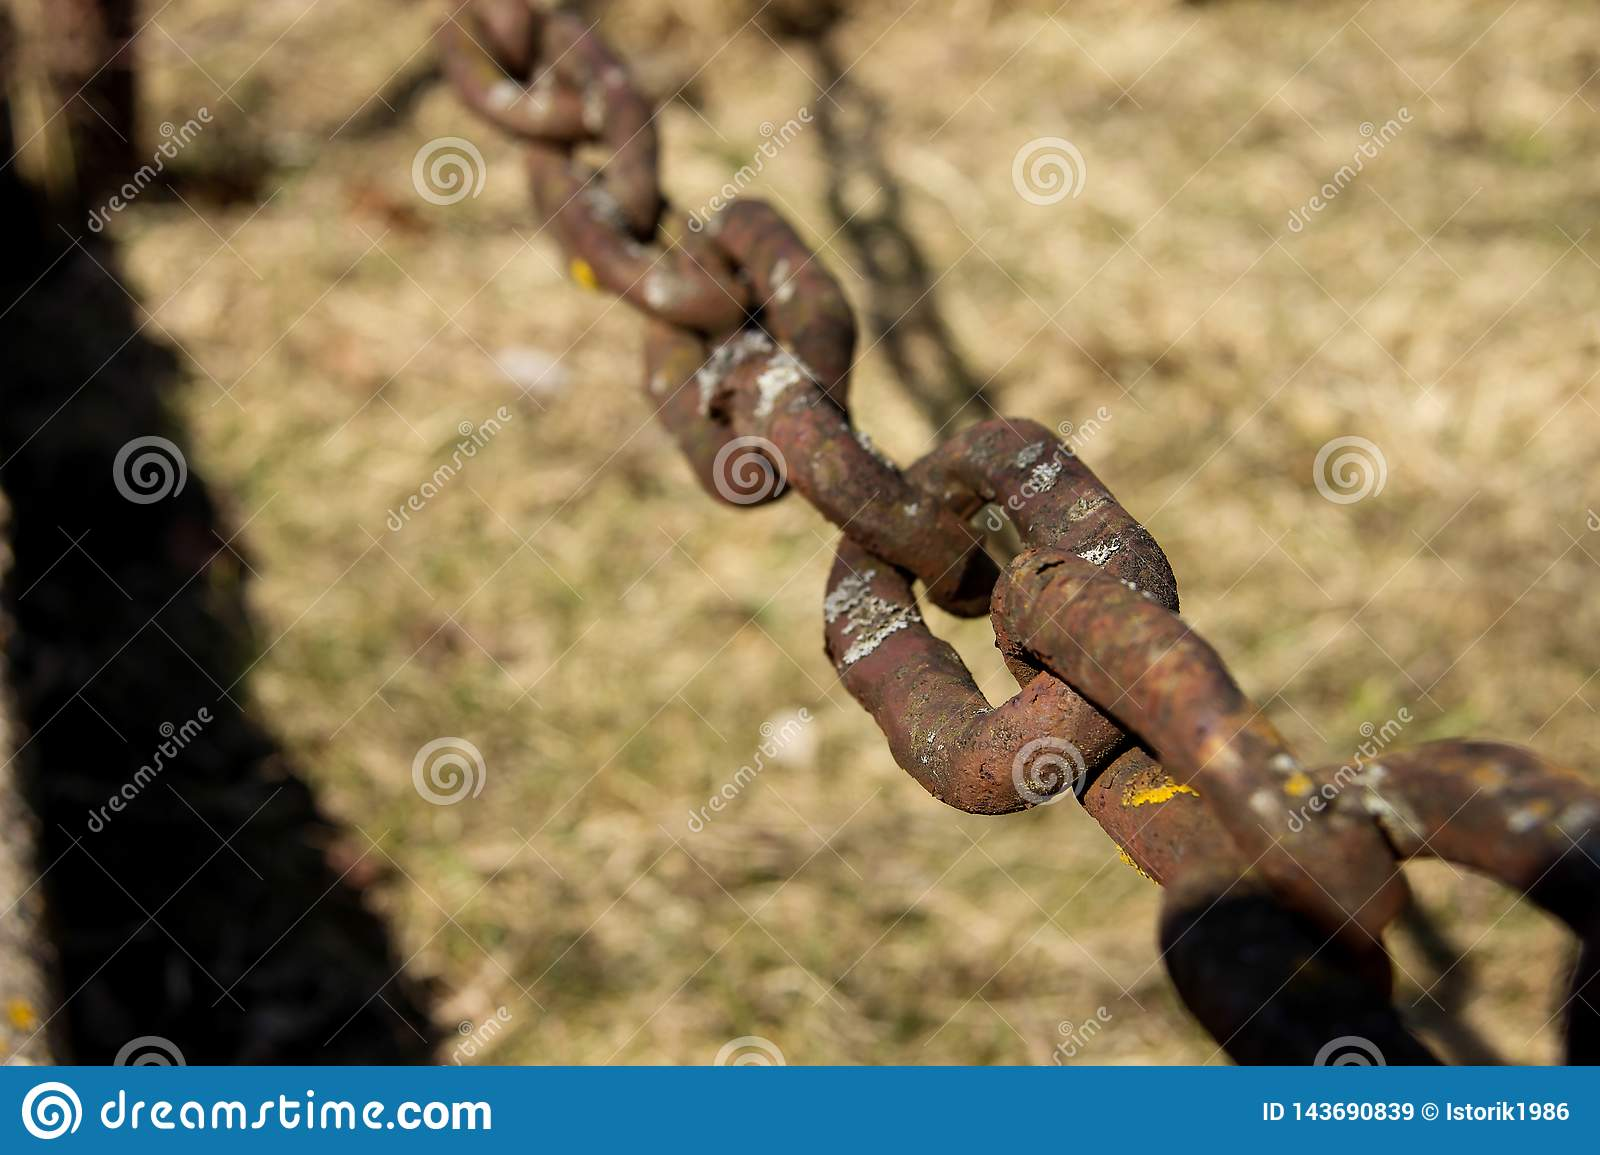 The fastening elements of the chain. Chain links